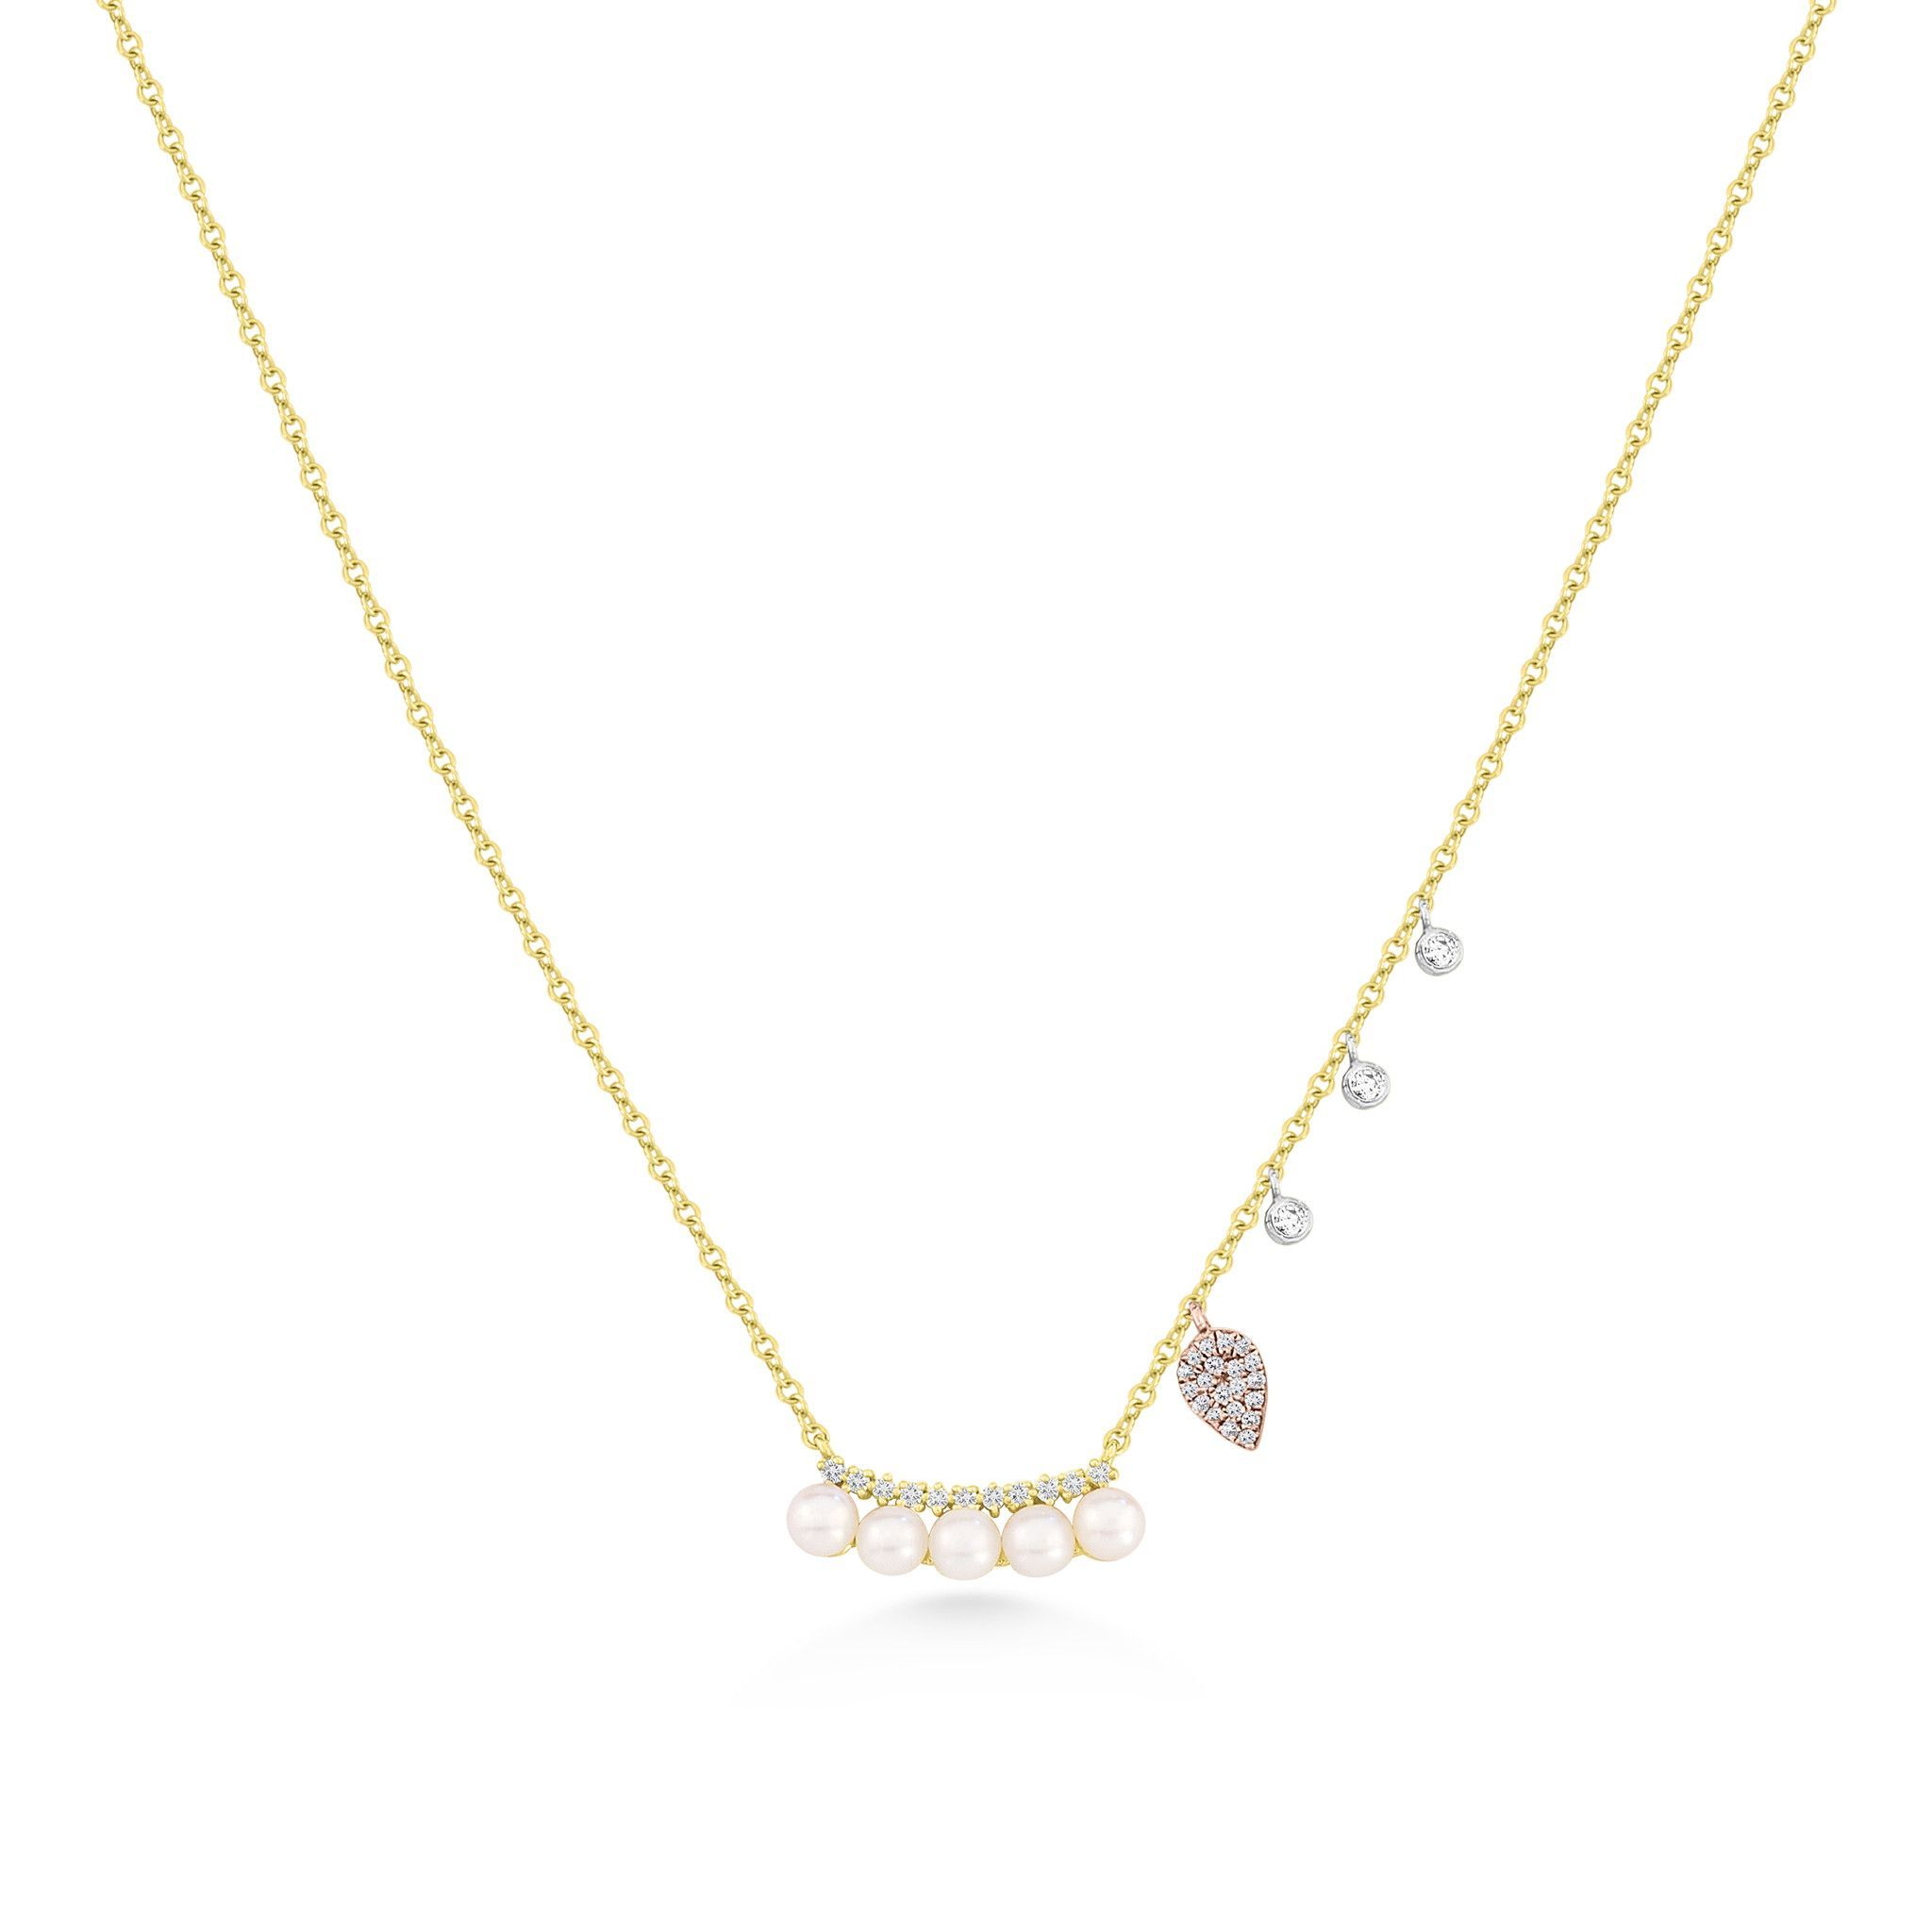 Yellow gold pearl necklace with rose gold charms and diamond bezels